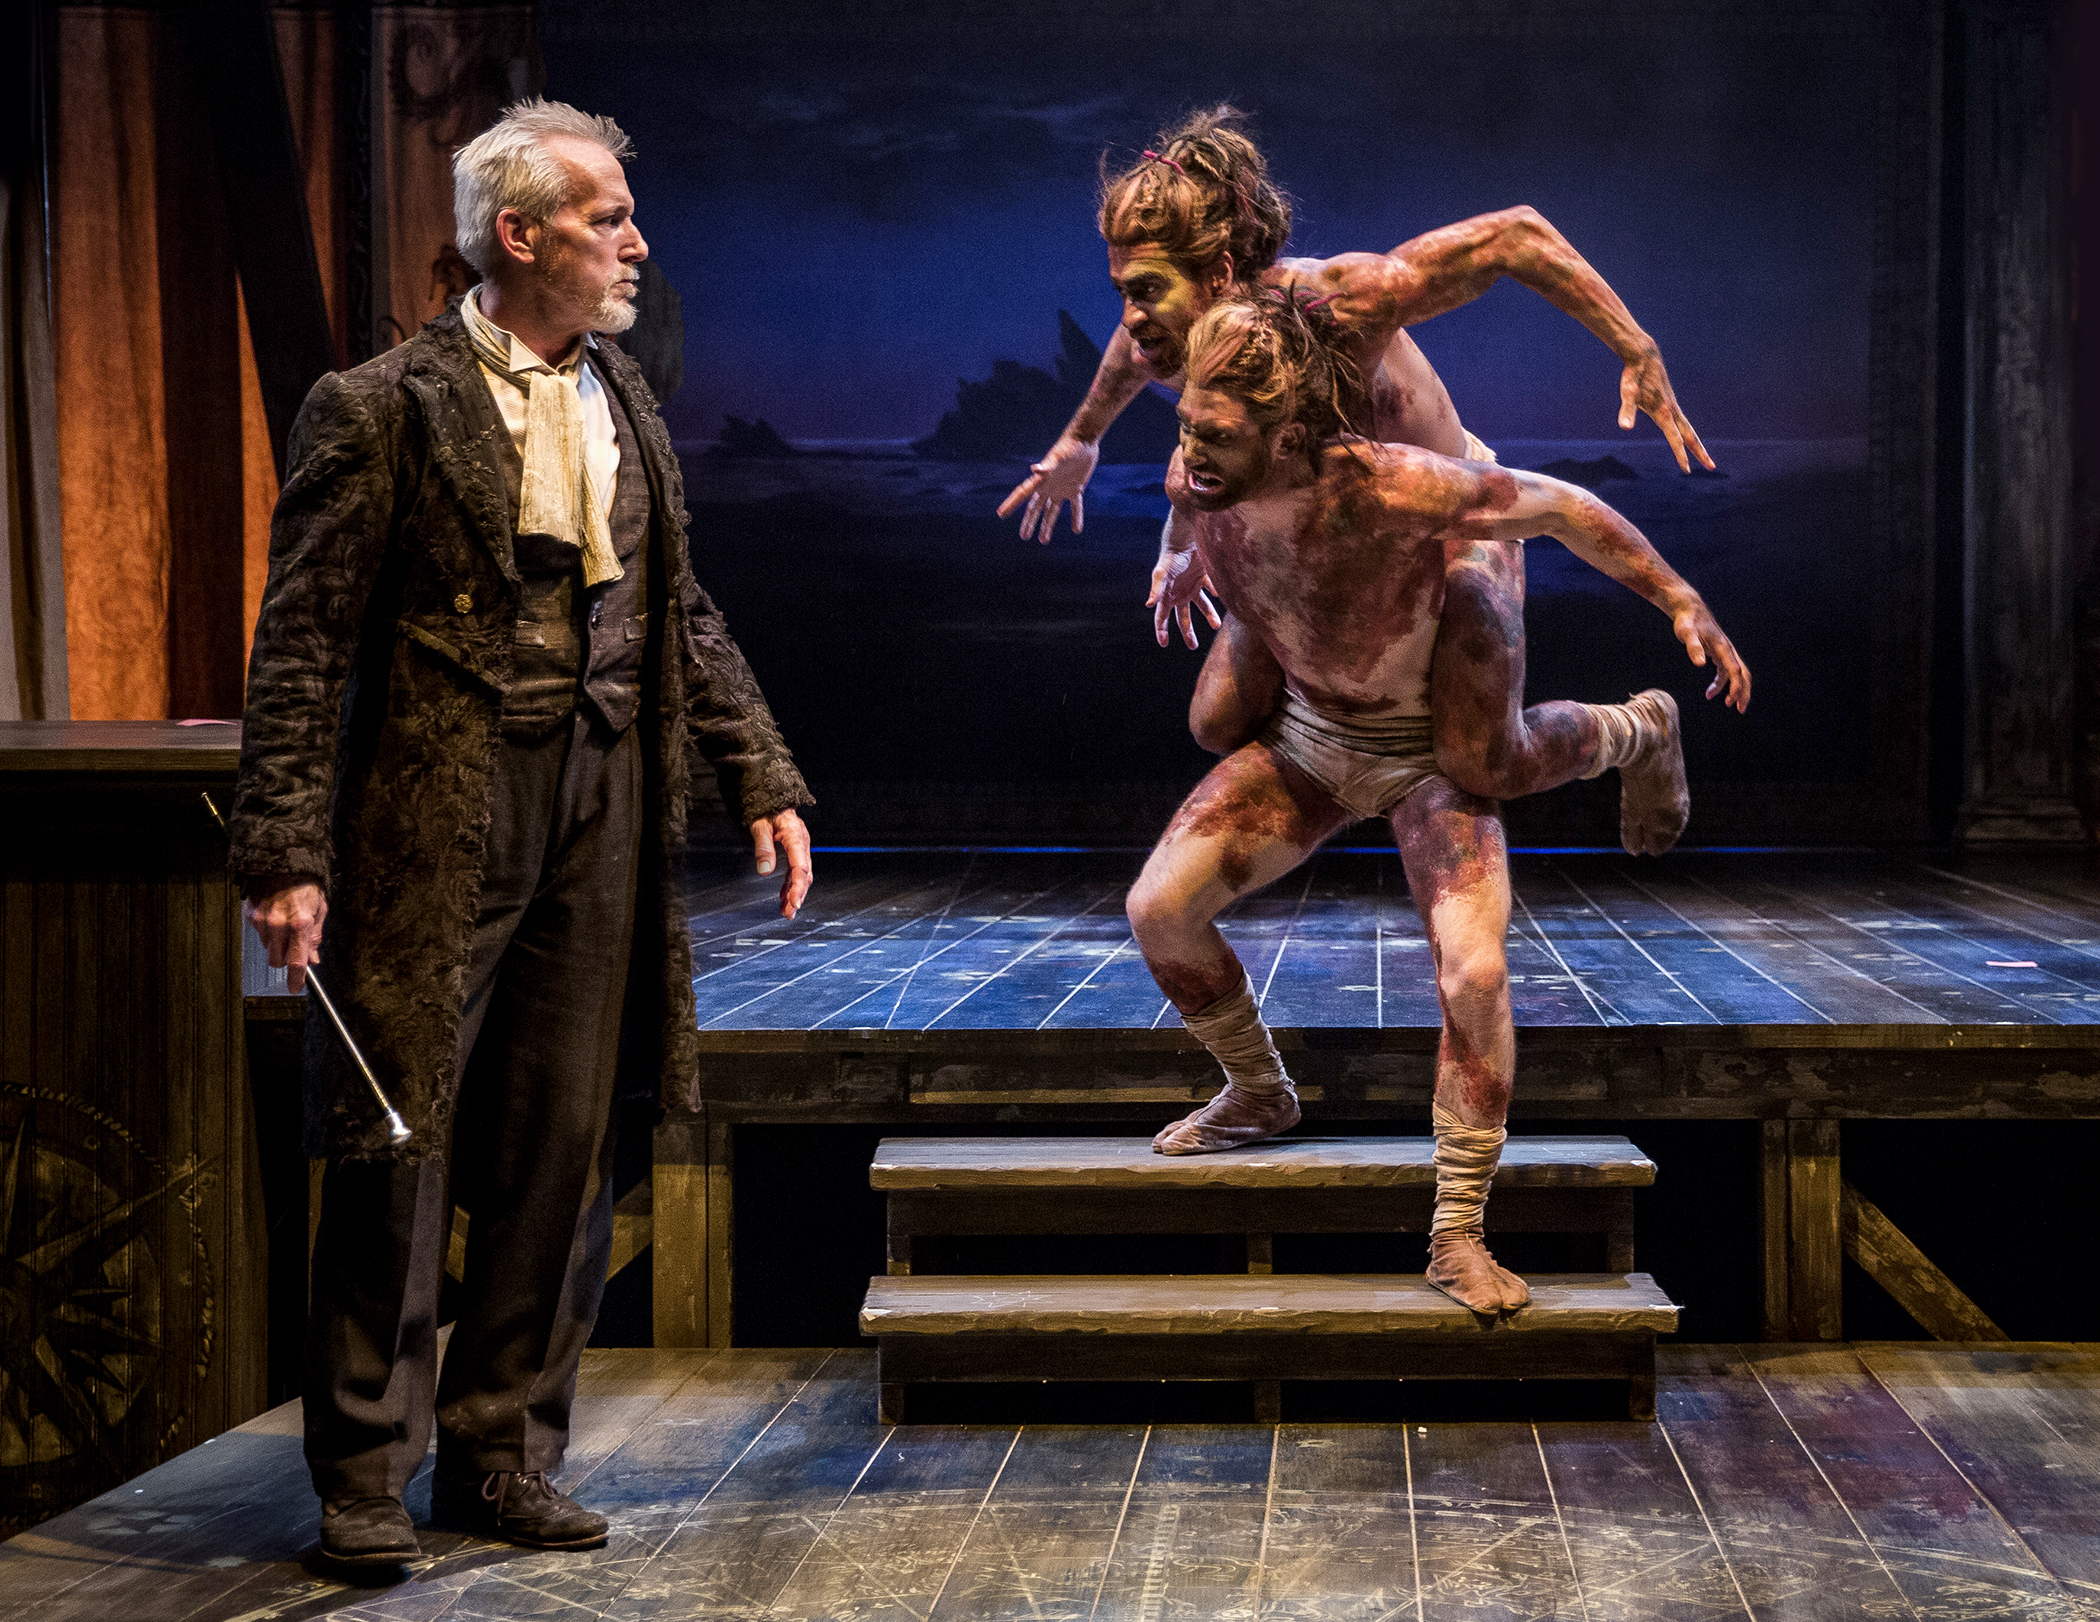 theater review the tempest chicago shakespeare theater cst tempest 04 lizlauren